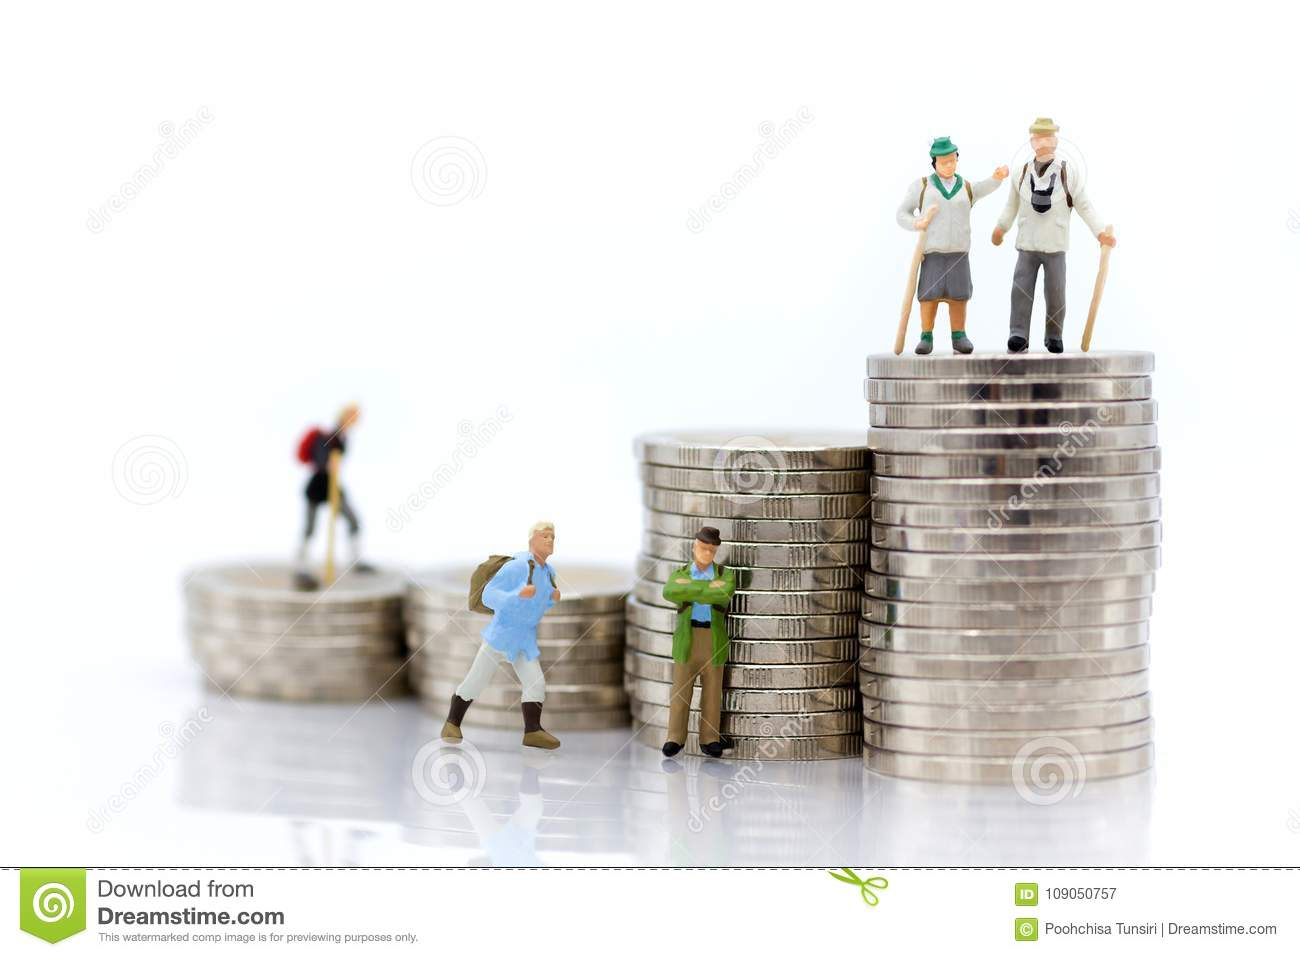 Miniature people: Old people standing on top of stack coins . Image use for background retirement planning, Life insurance concept